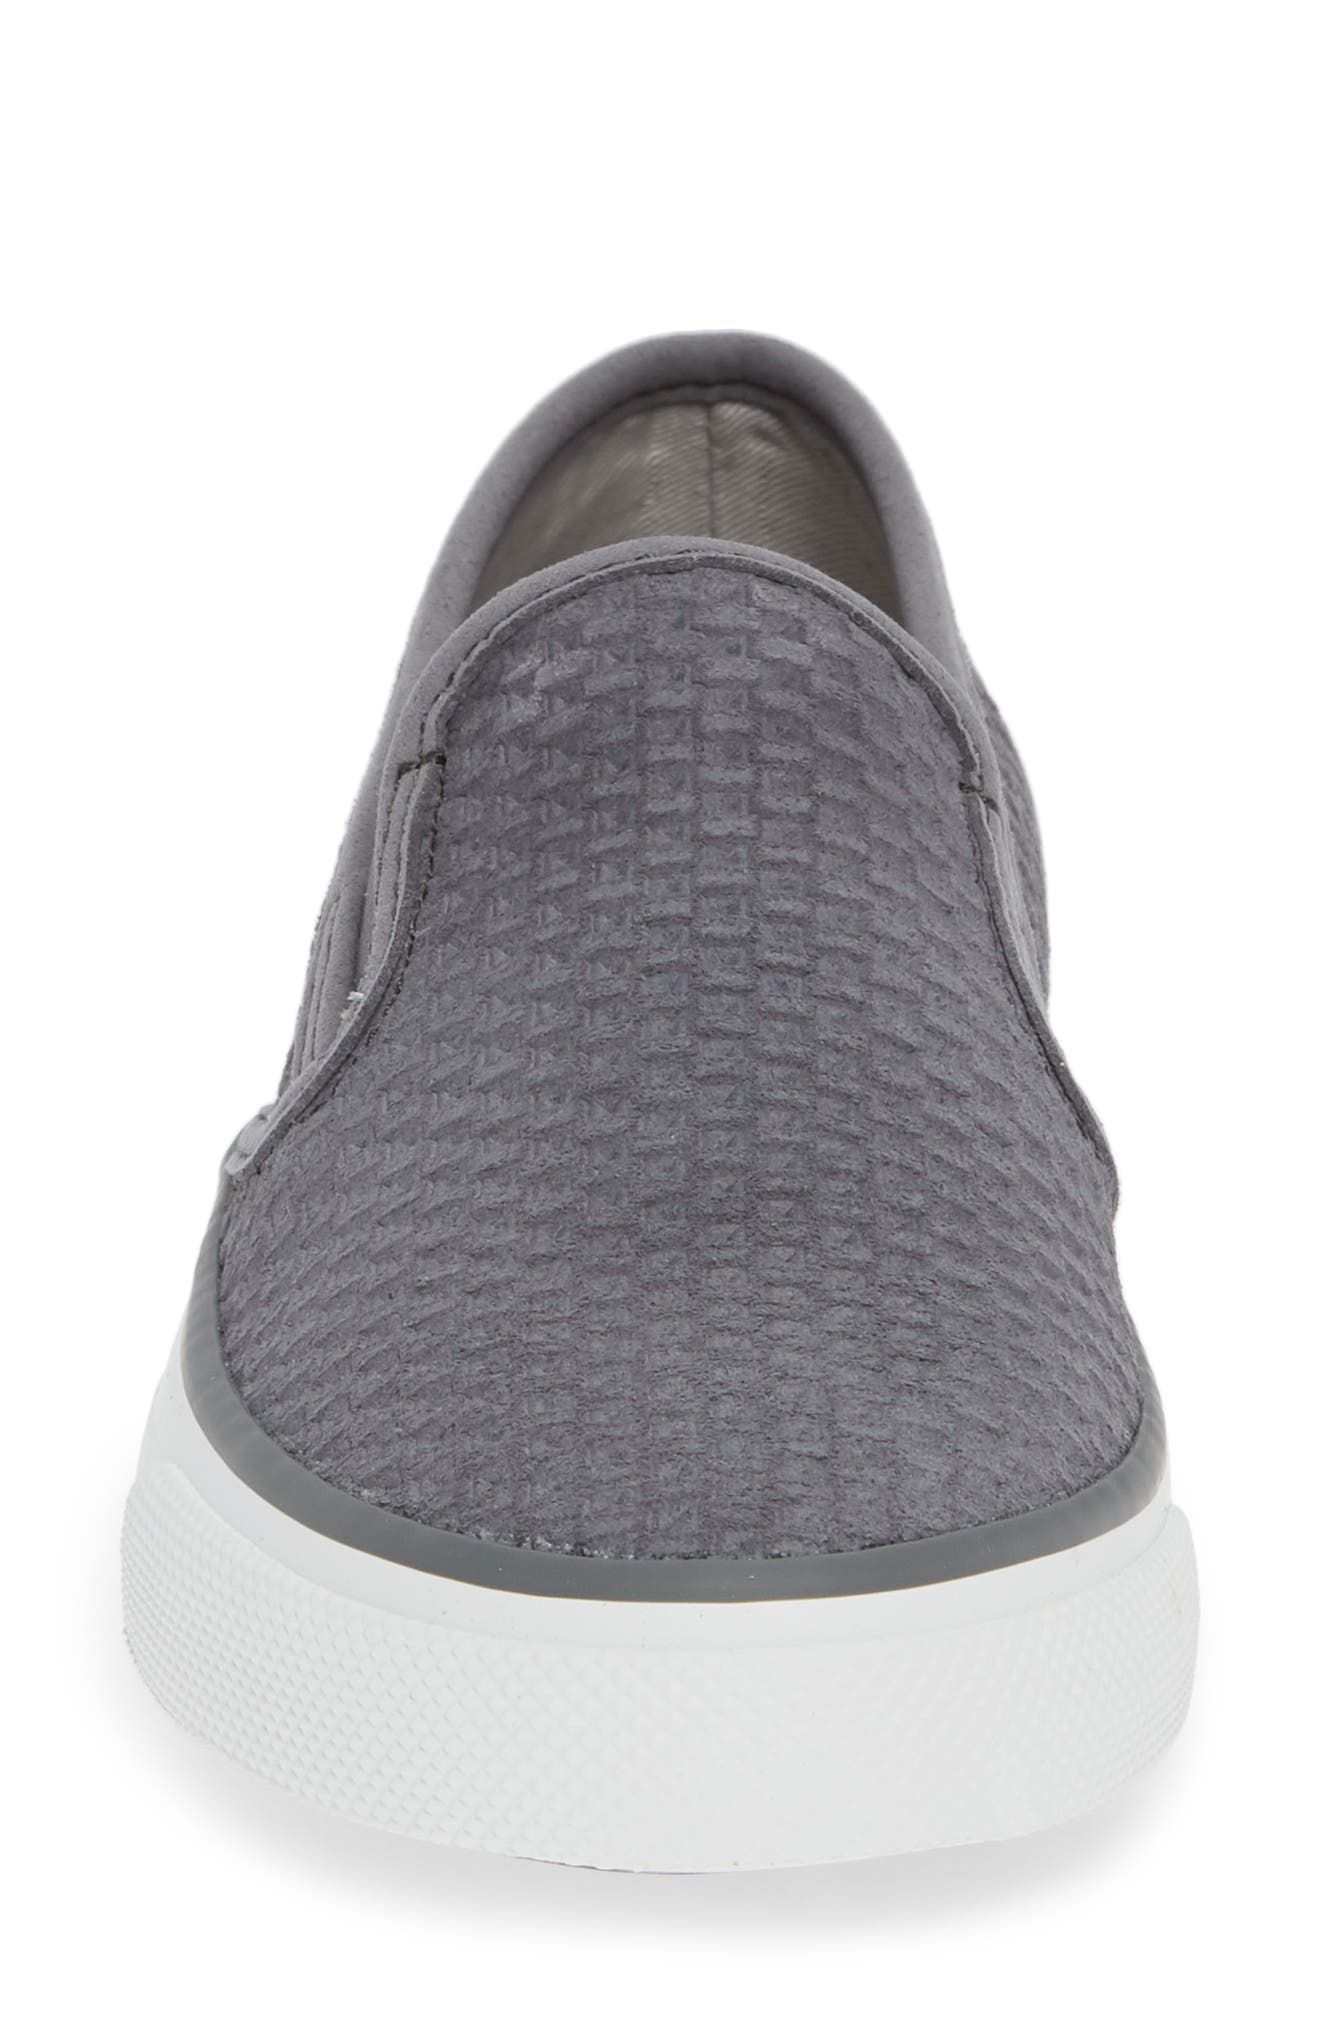 Seaside Embossed Slip-On Sneaker,                             Alternate thumbnail 4, color,                             GREY SUEDE